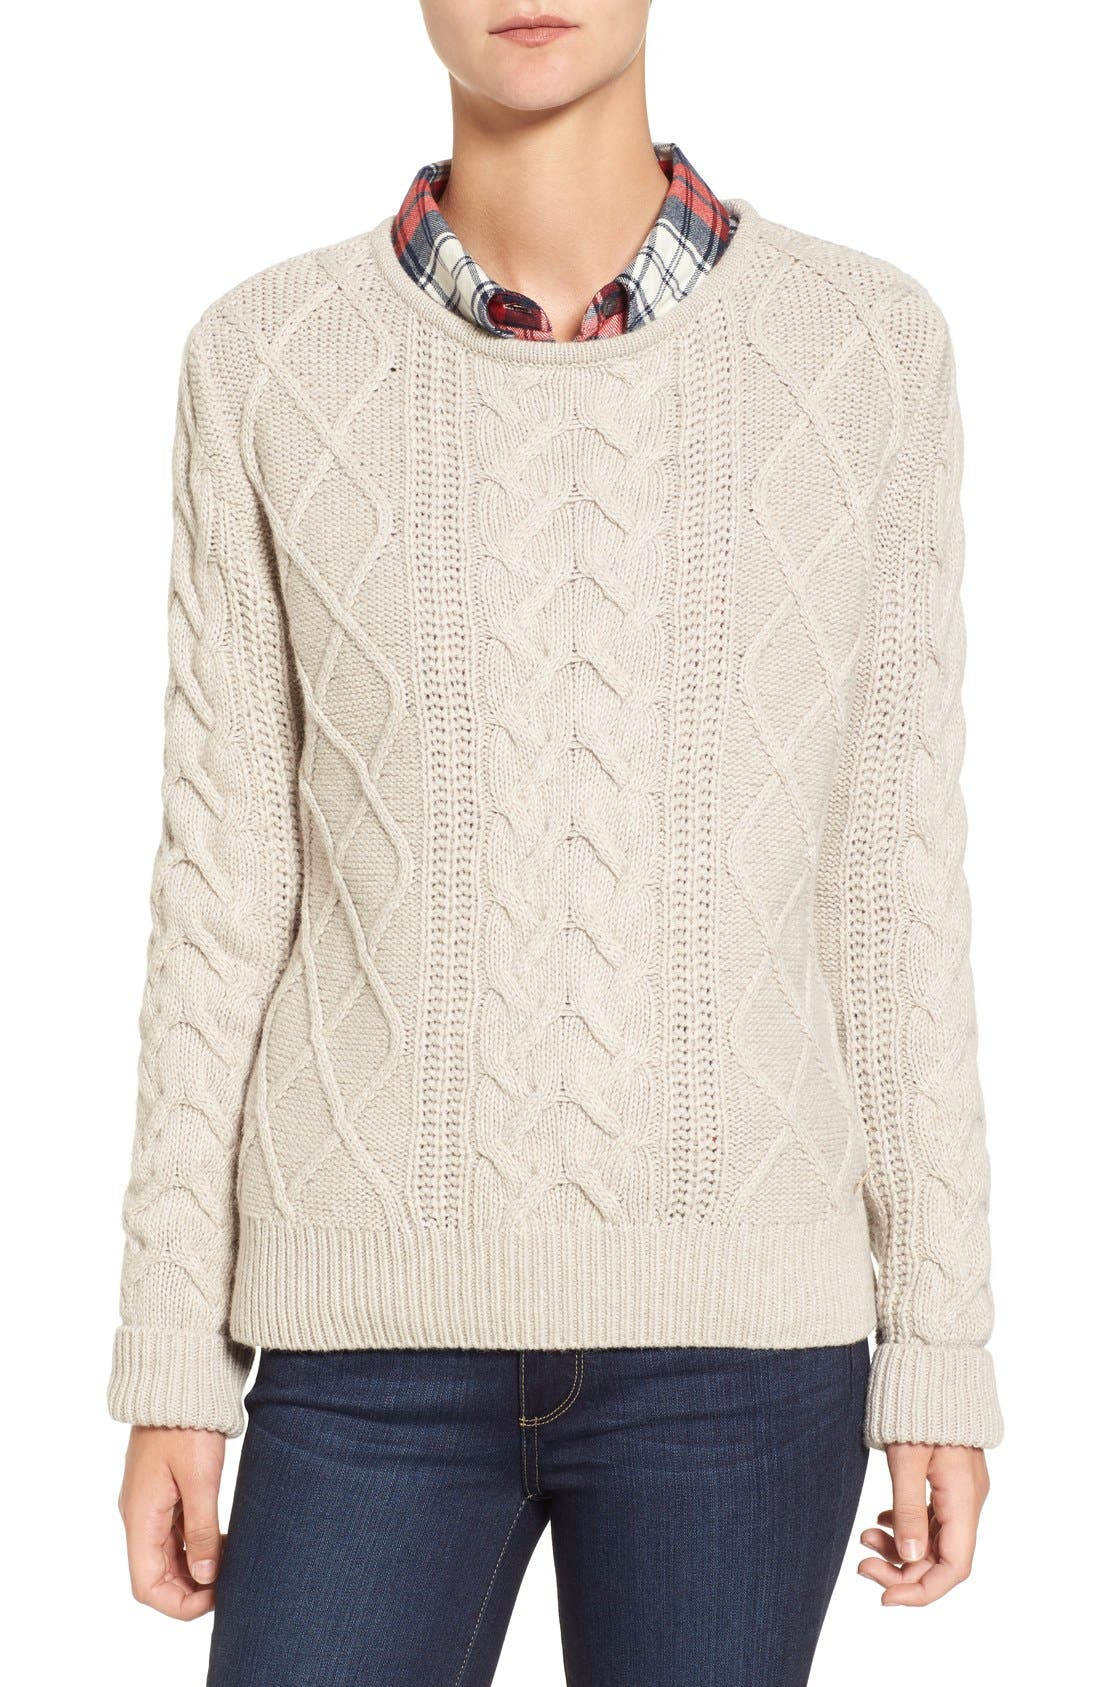 Alternate Image 1 Selected - Barbour 'Tidewater' Cable Knit Crewneck Sweater